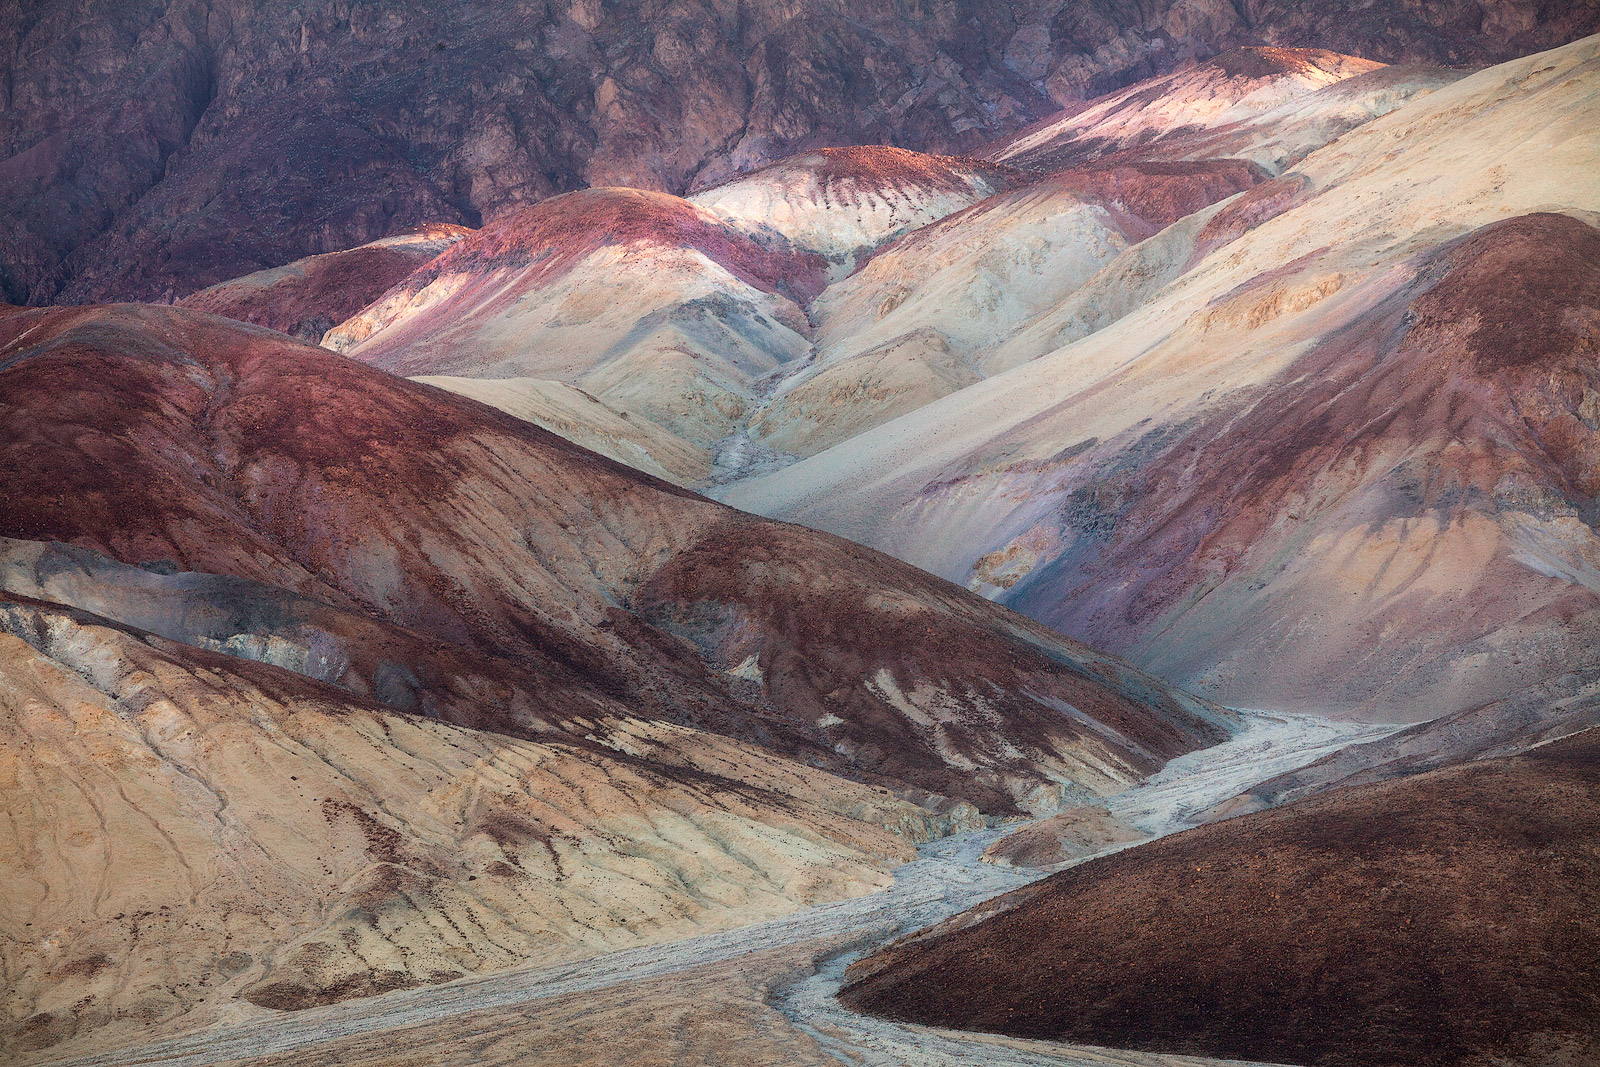 america,artist's drive,artists drive,badlands,california,canyon,death valley,death valley national park,north america,united states,us,usa,west, photo